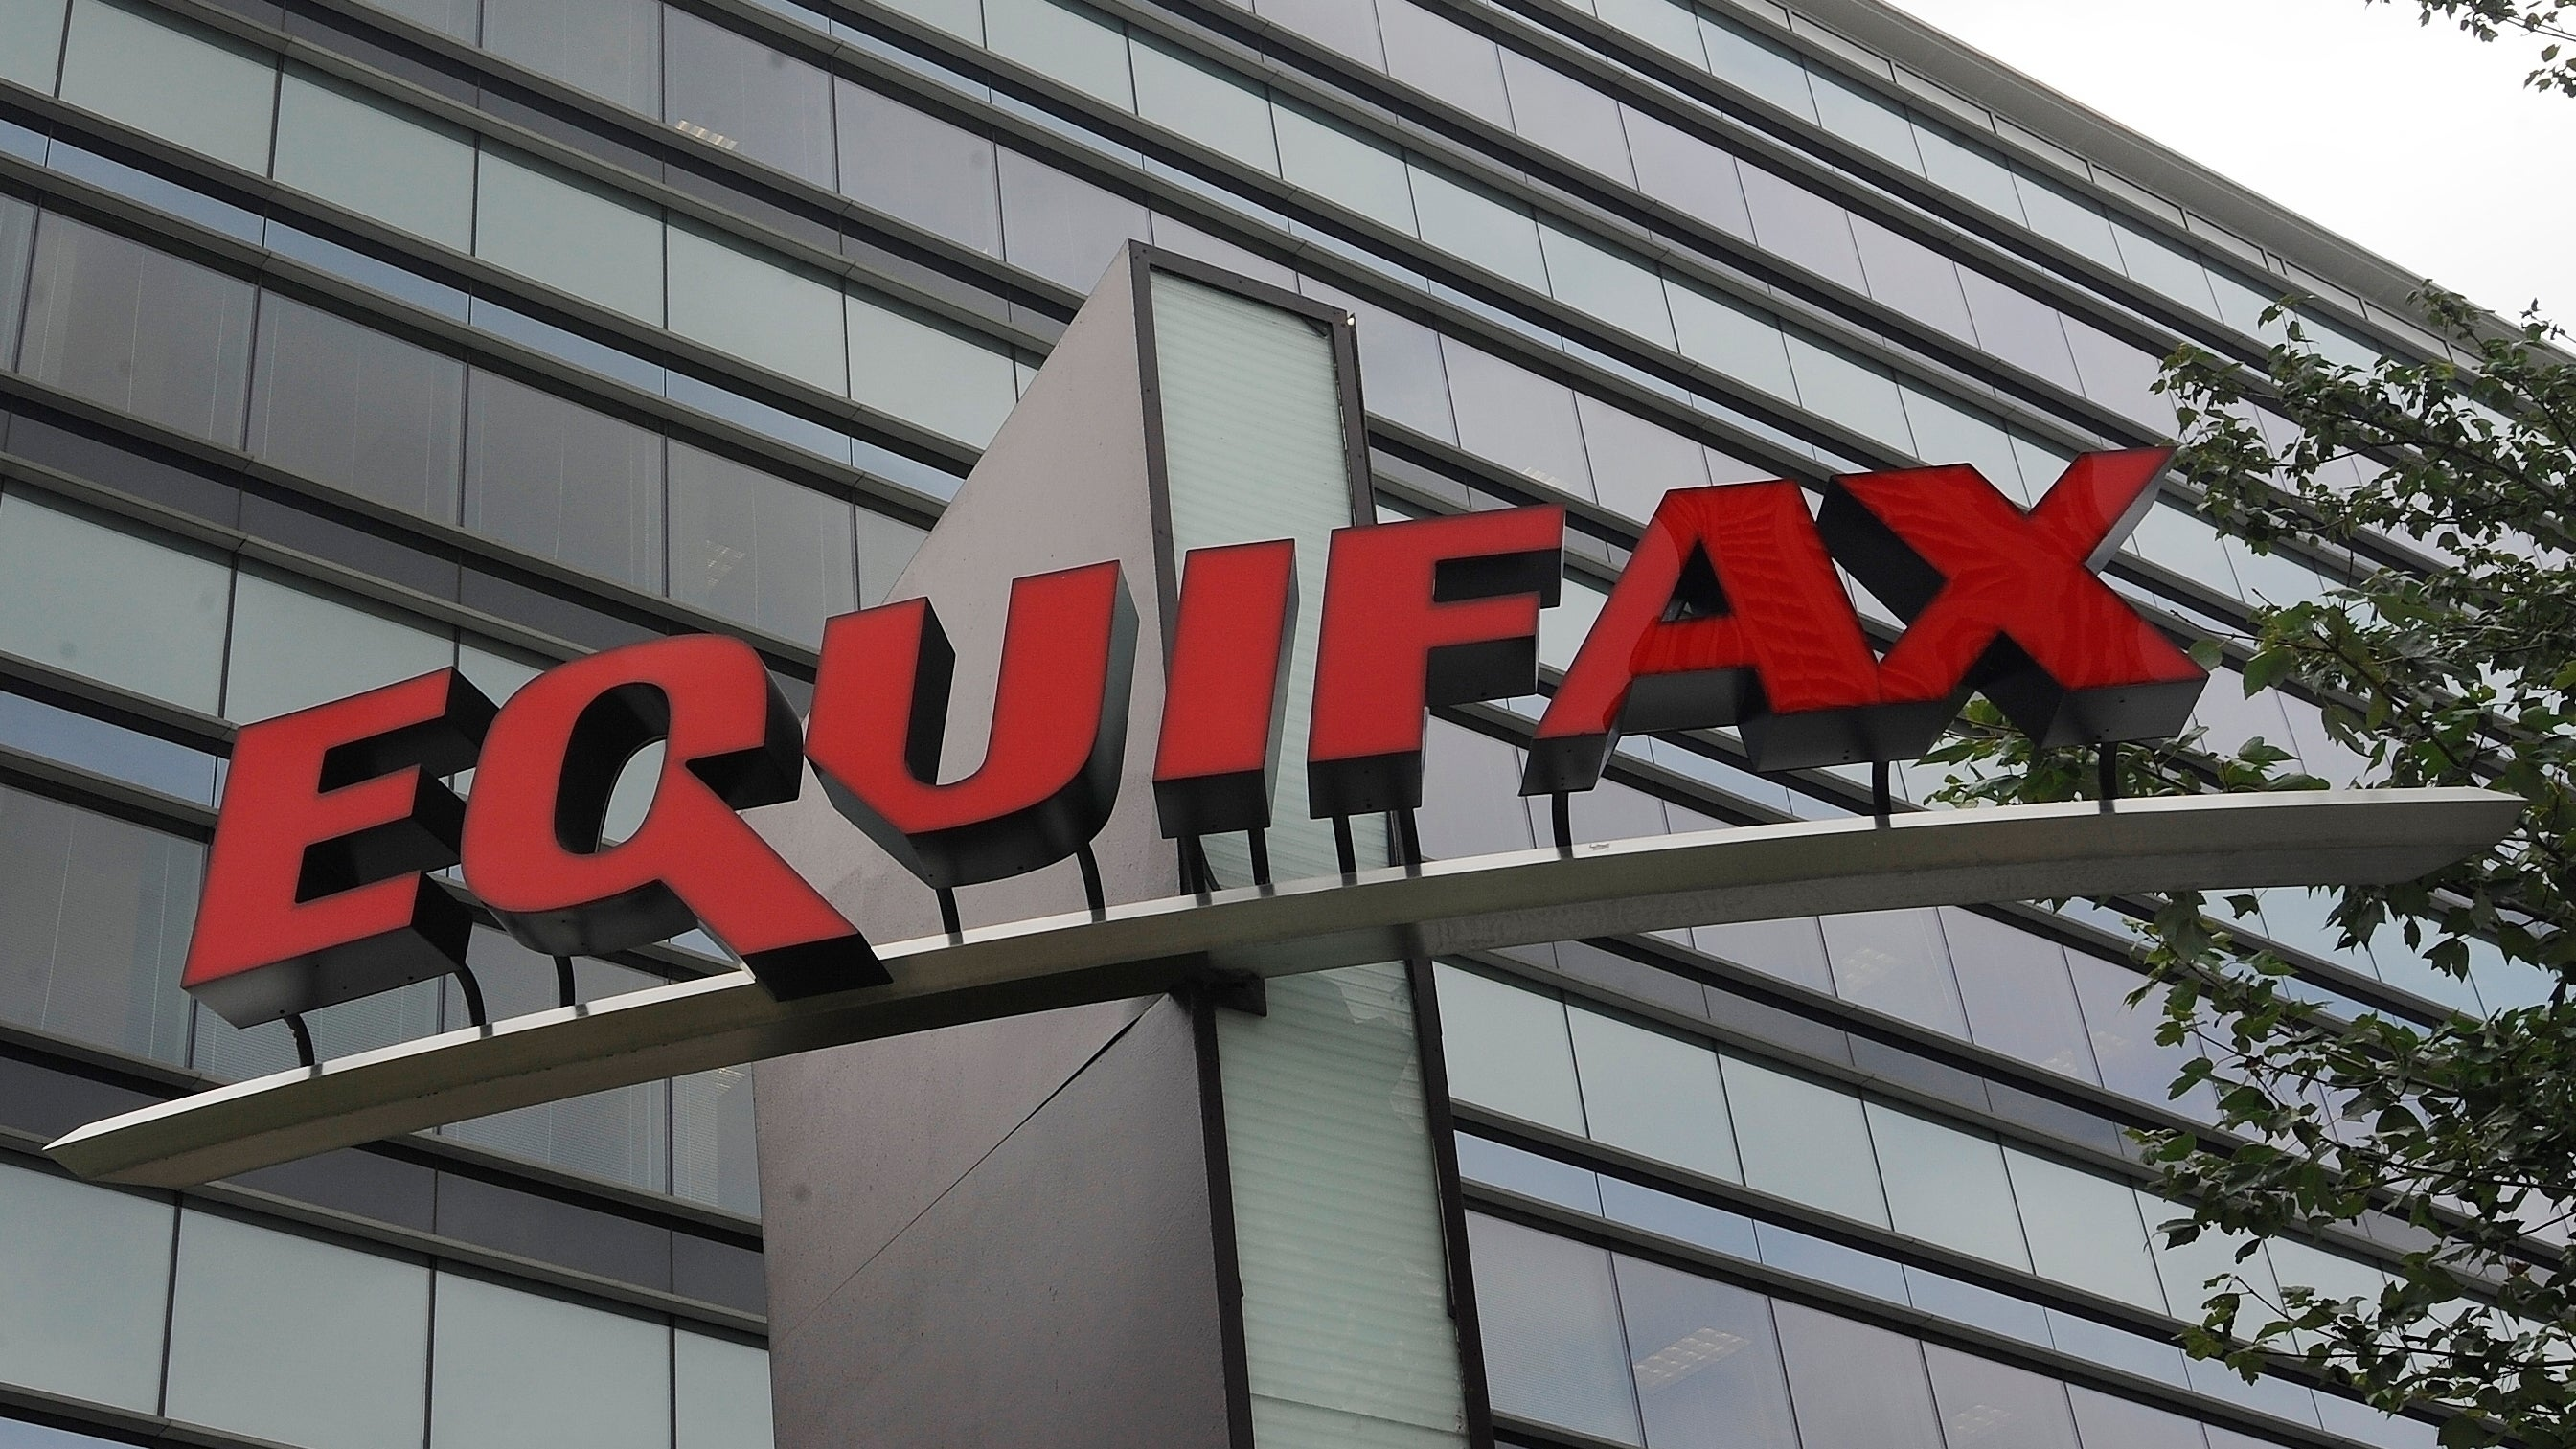 Former Equifax Manager Gets Home Confinement For Insider Trading Amid Data Breach